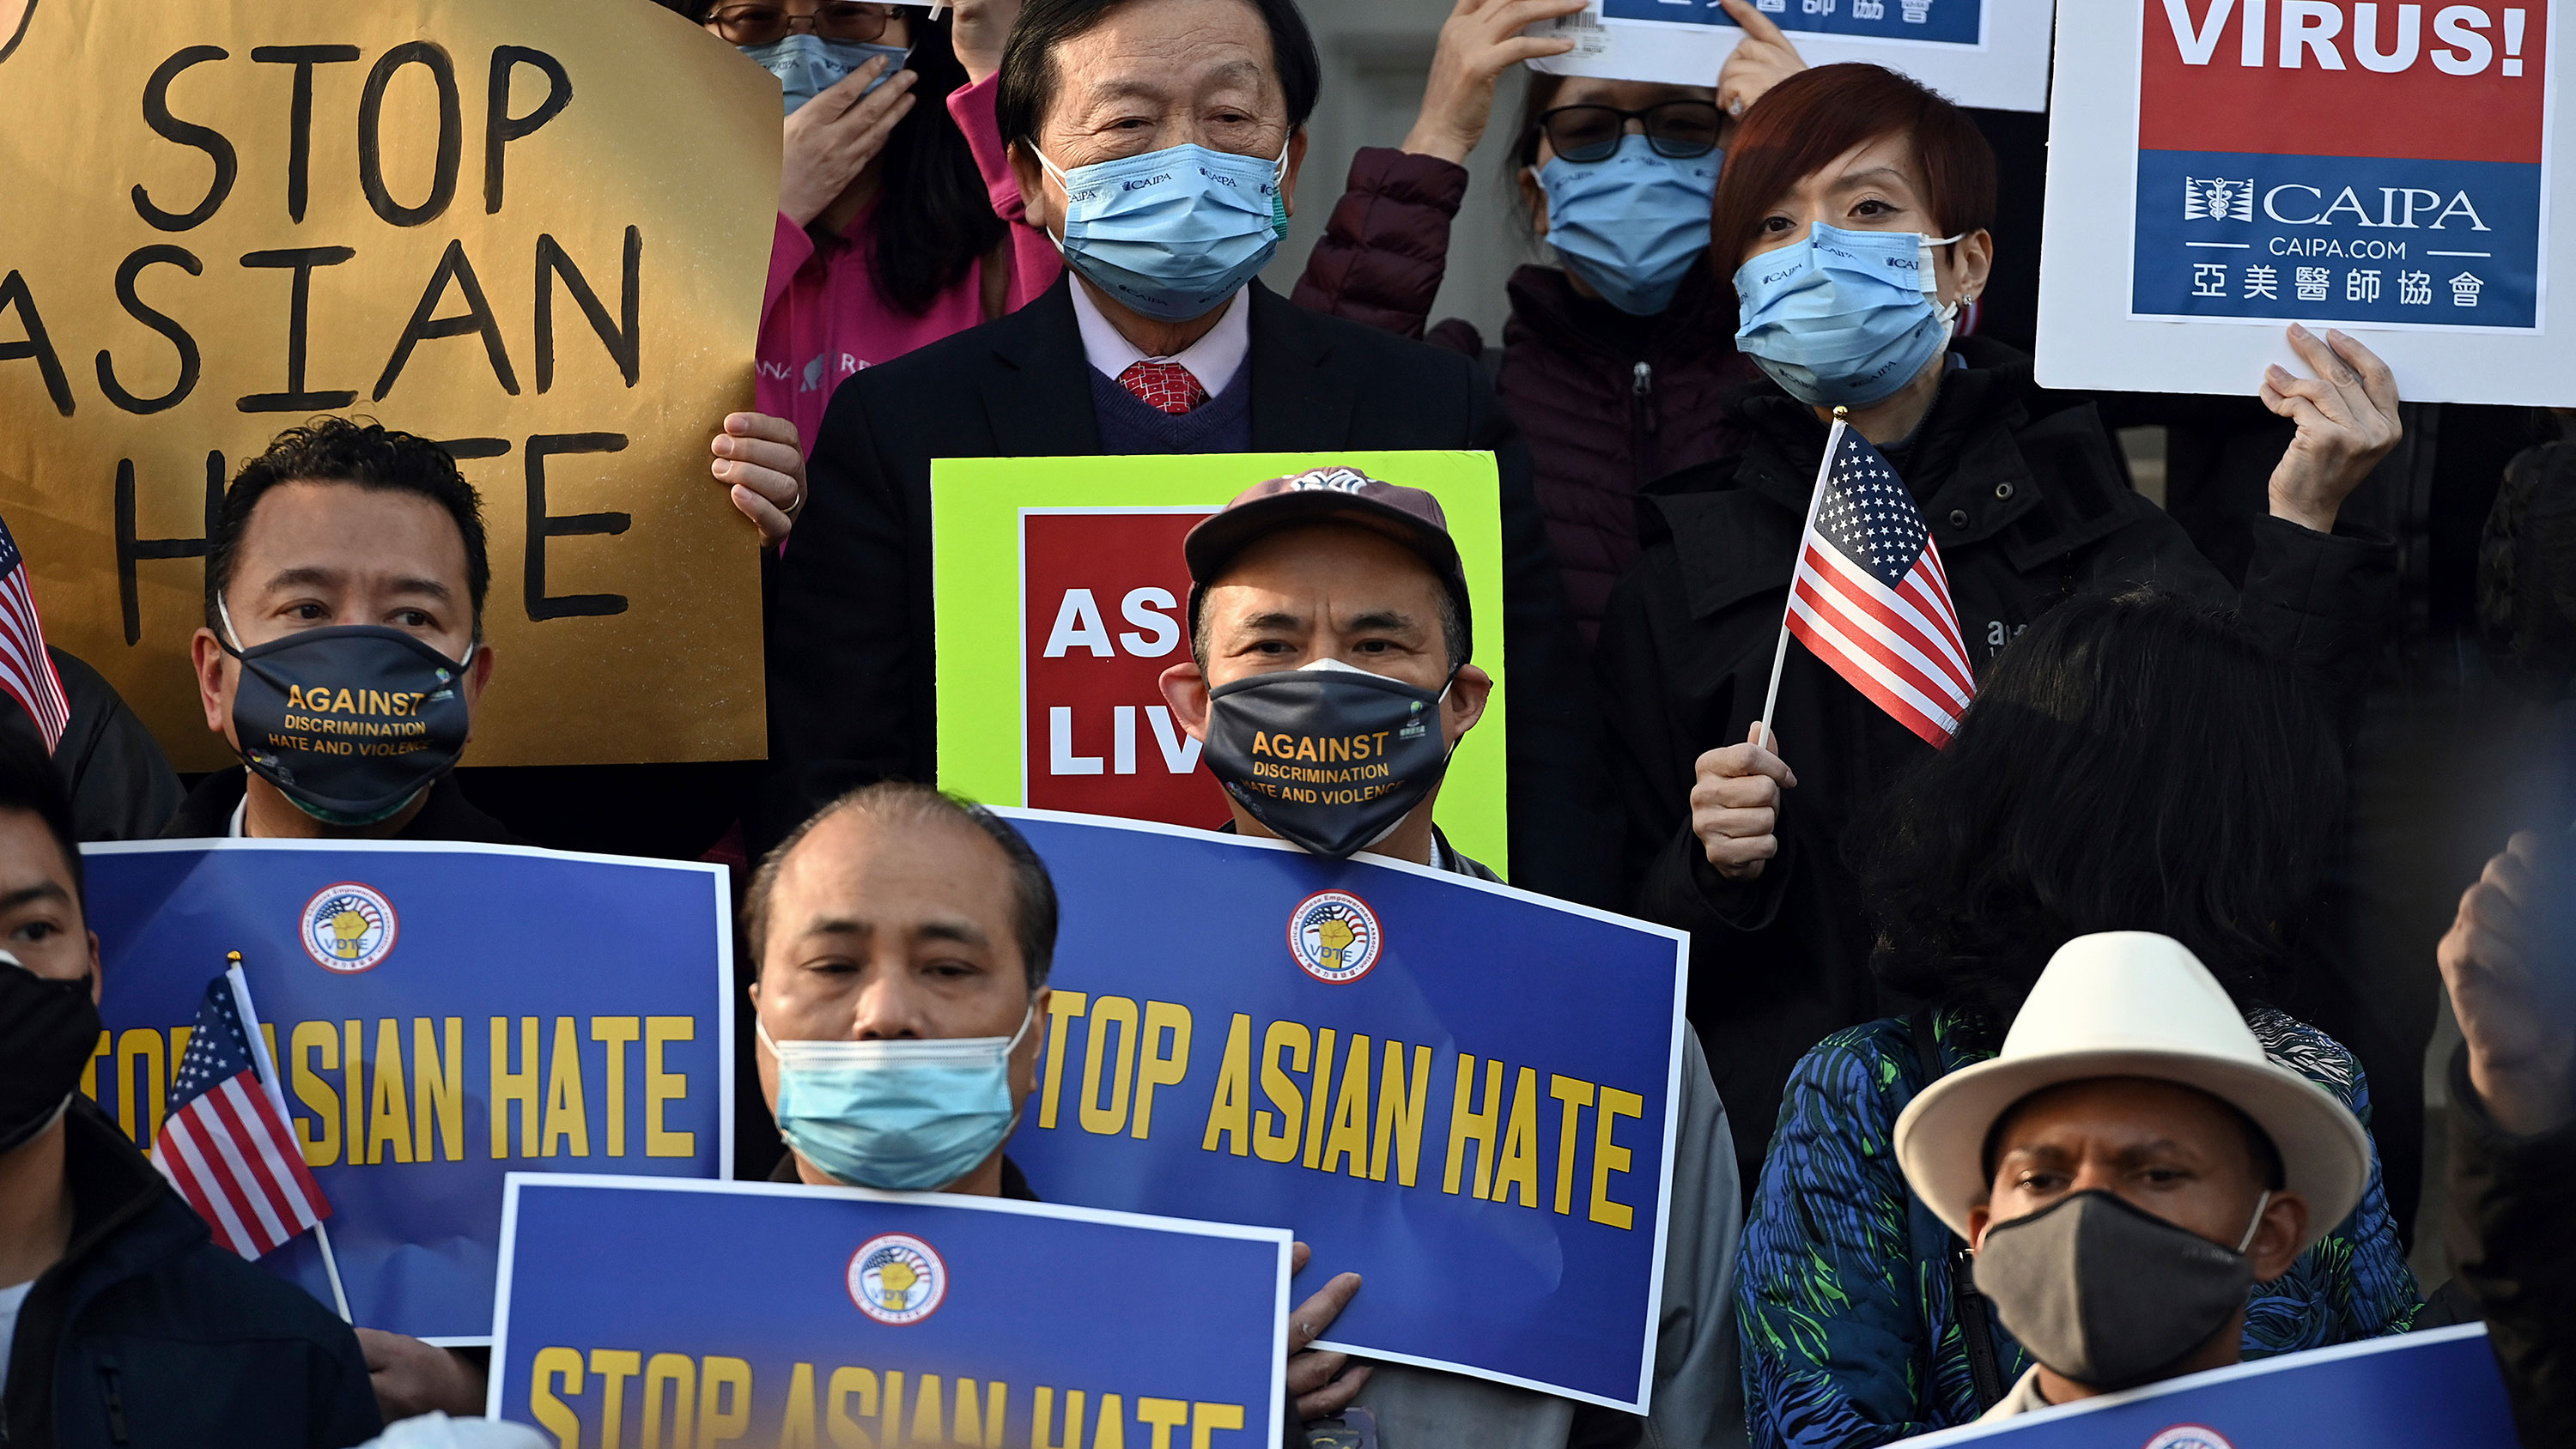 Anti-Asian hate crimes surged in early 2021, study says